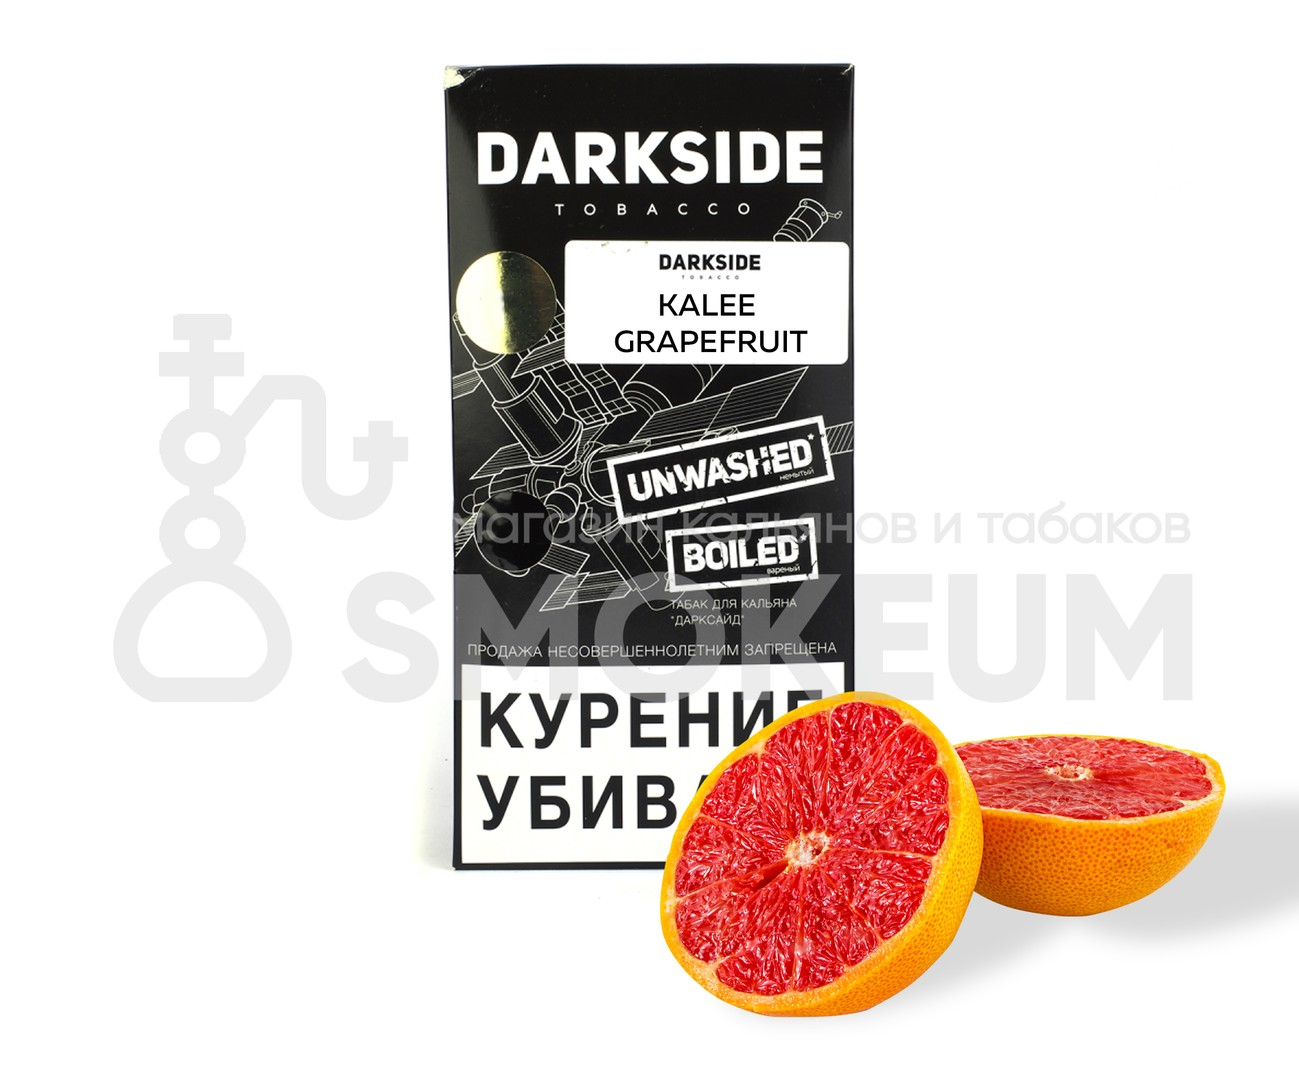 Табак Darkside (Soft) - Kalee grapefruit (Грейпфрут) 100 гр